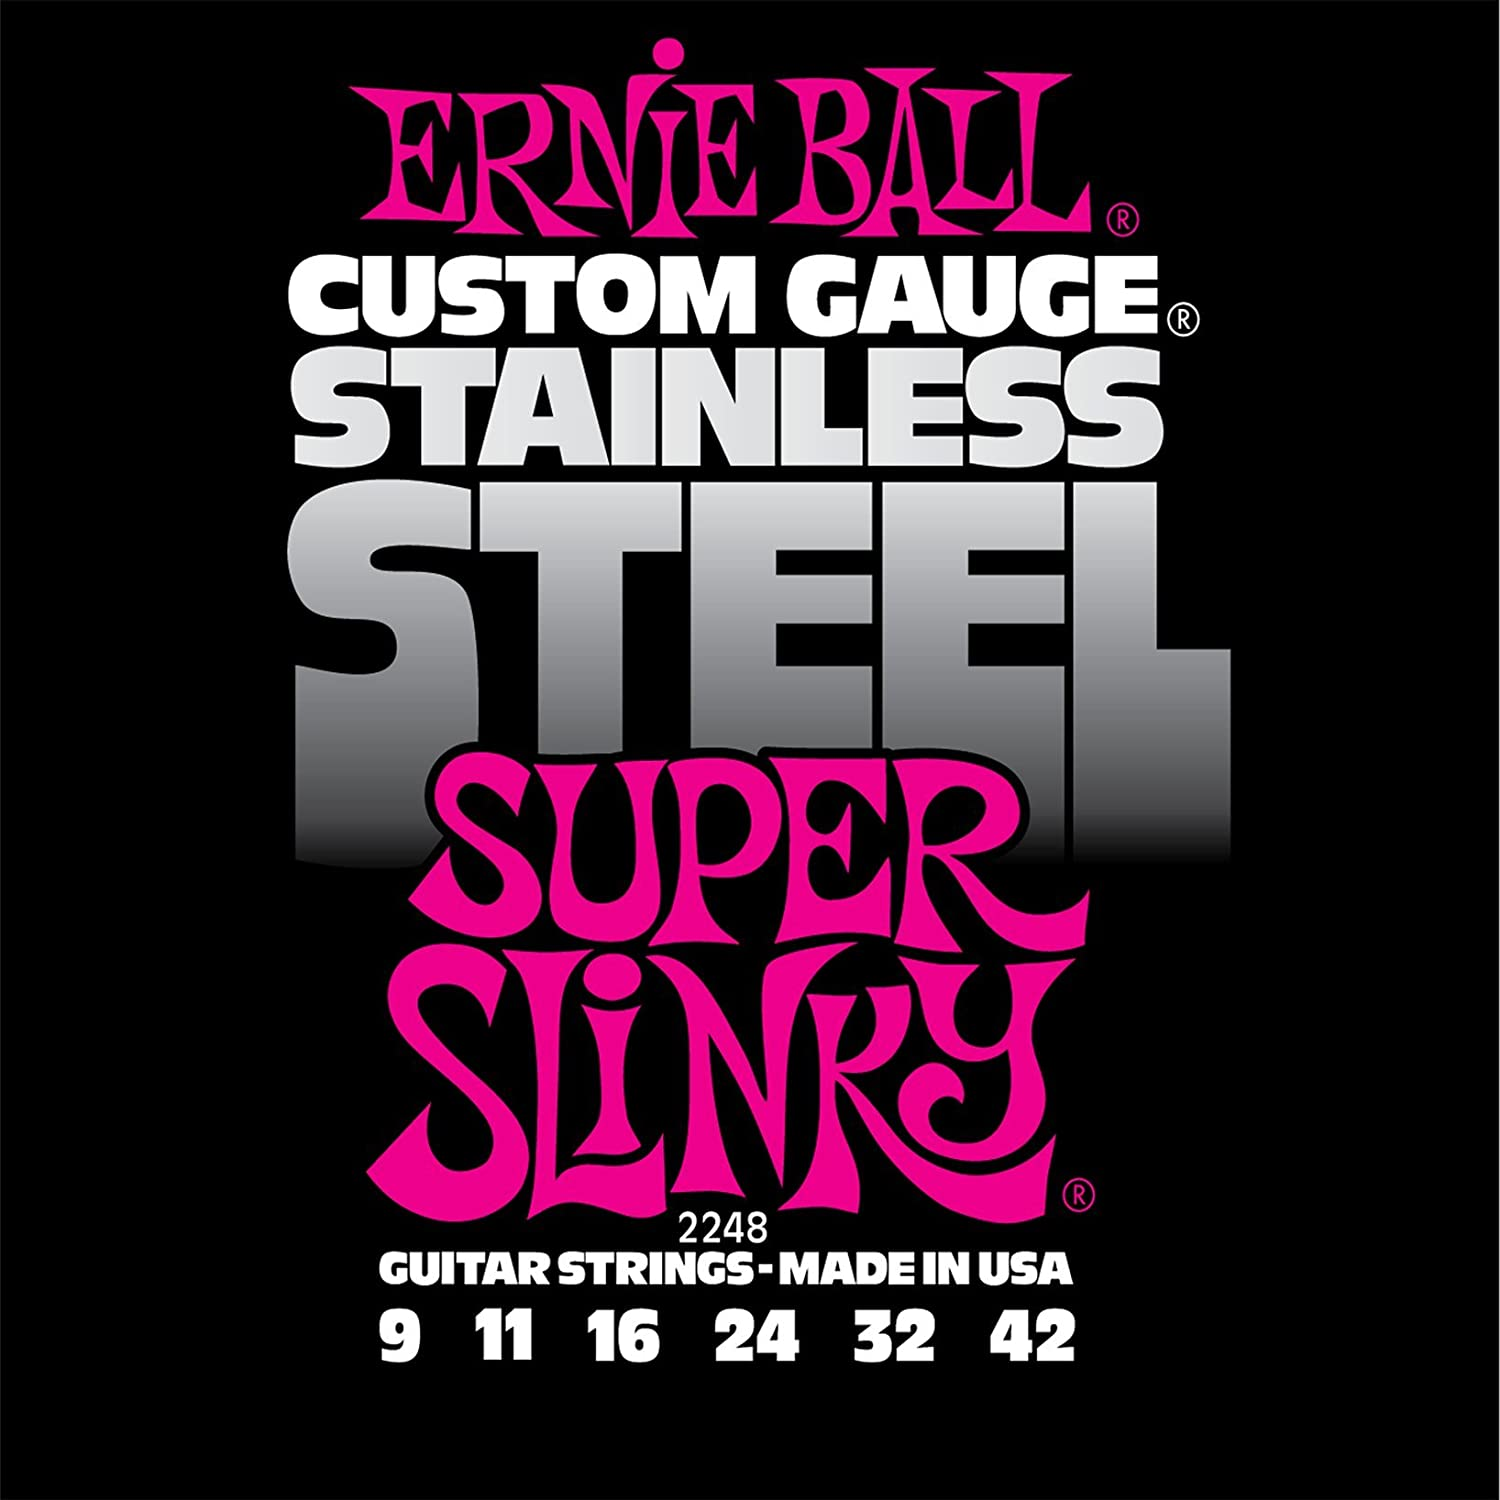 Ernie Ball 2248 Stainless Steel Super Slinky String Set (09-42) Coast Music P02248